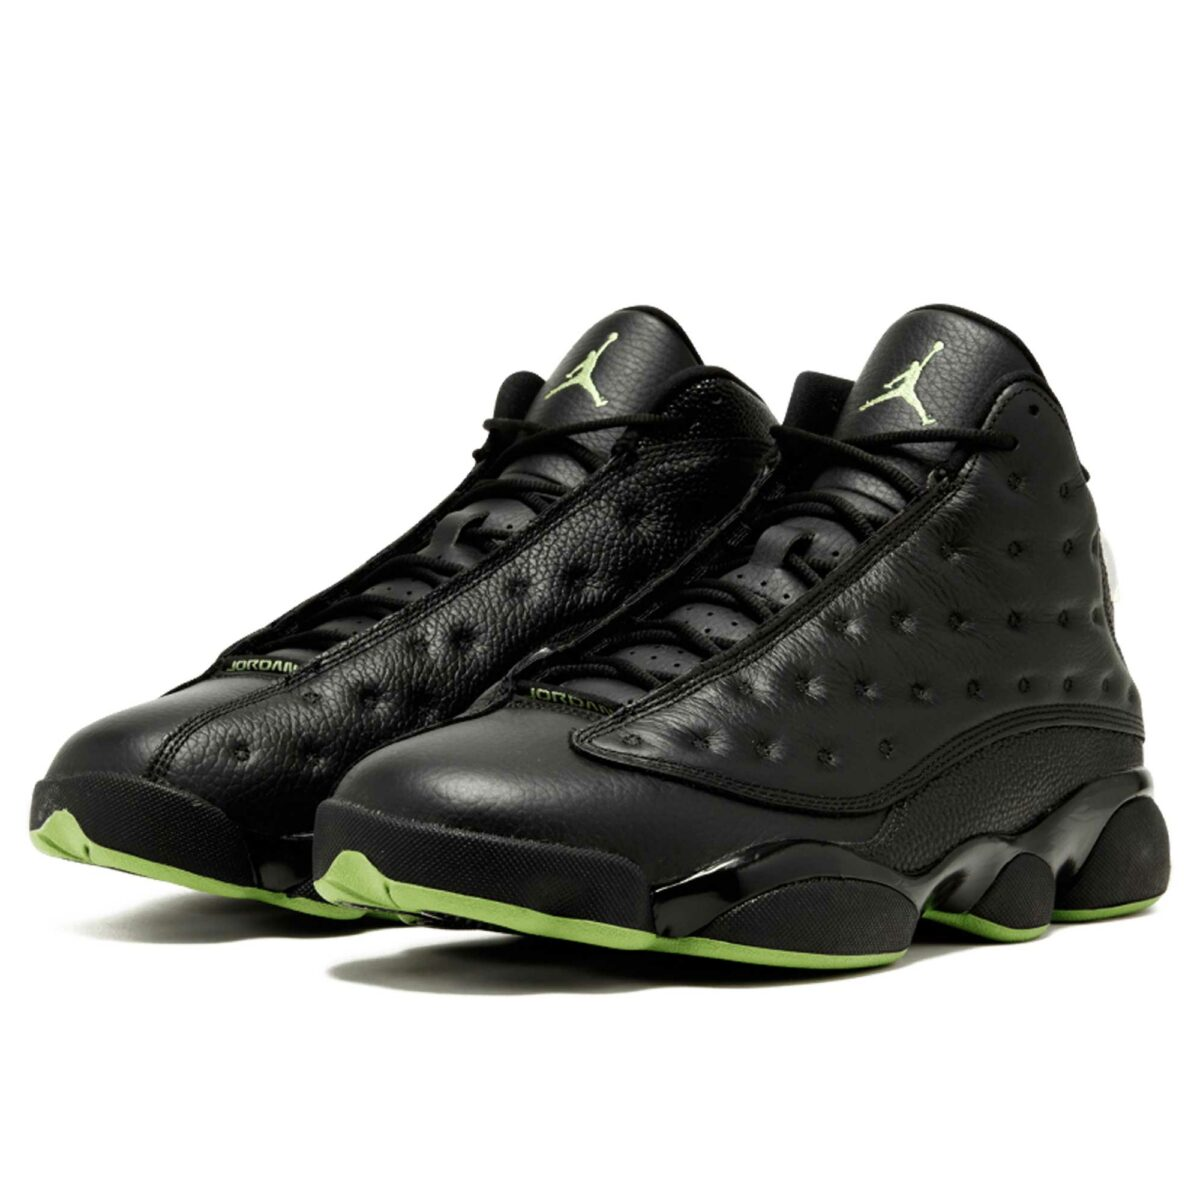 nike air Jordan 13 retro black leather 414571_042 купить